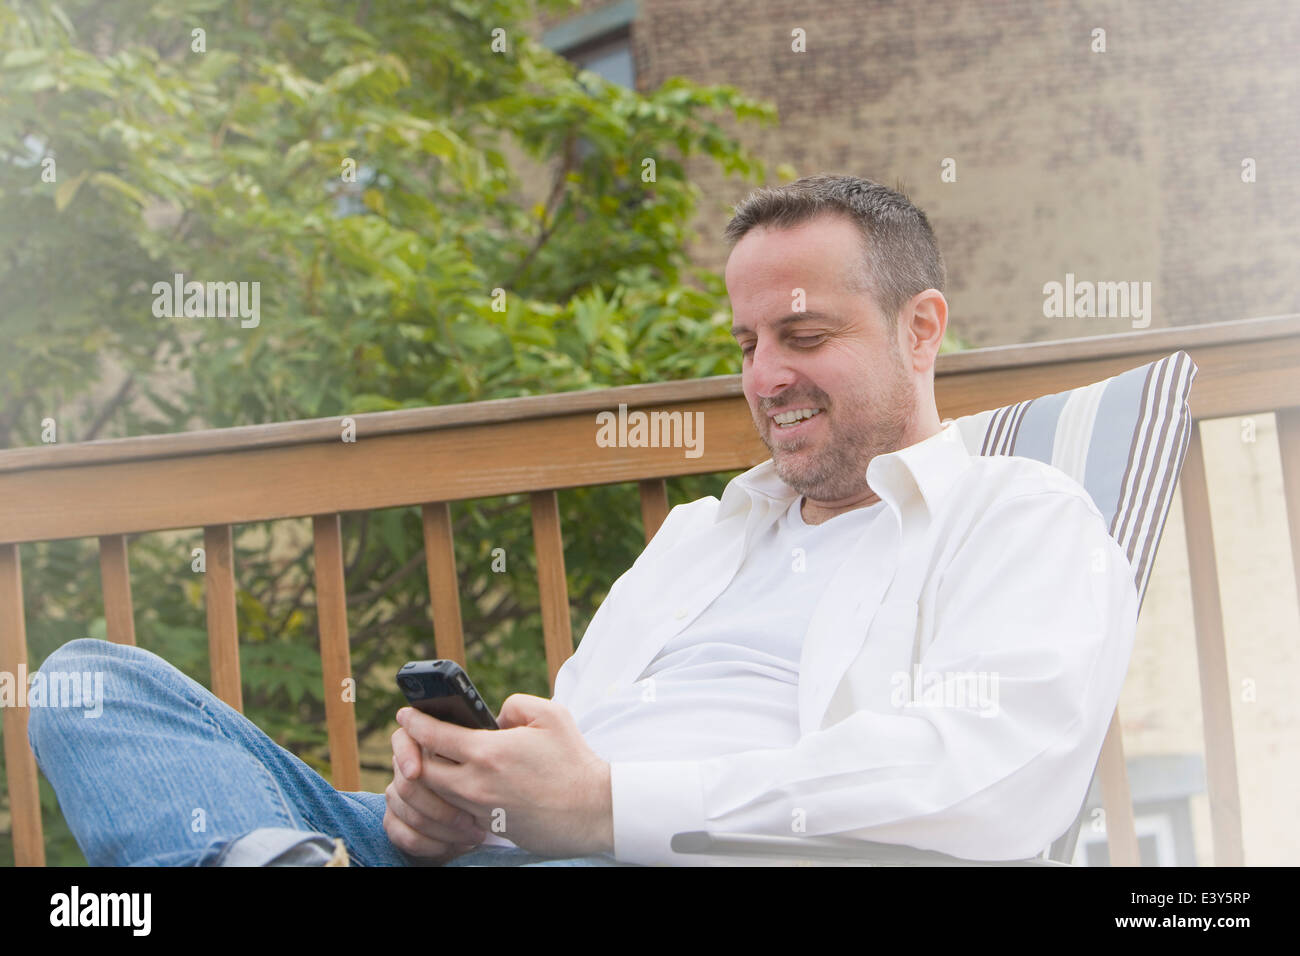 Mature man in garden deck chair texting on smartphone - Stock Image